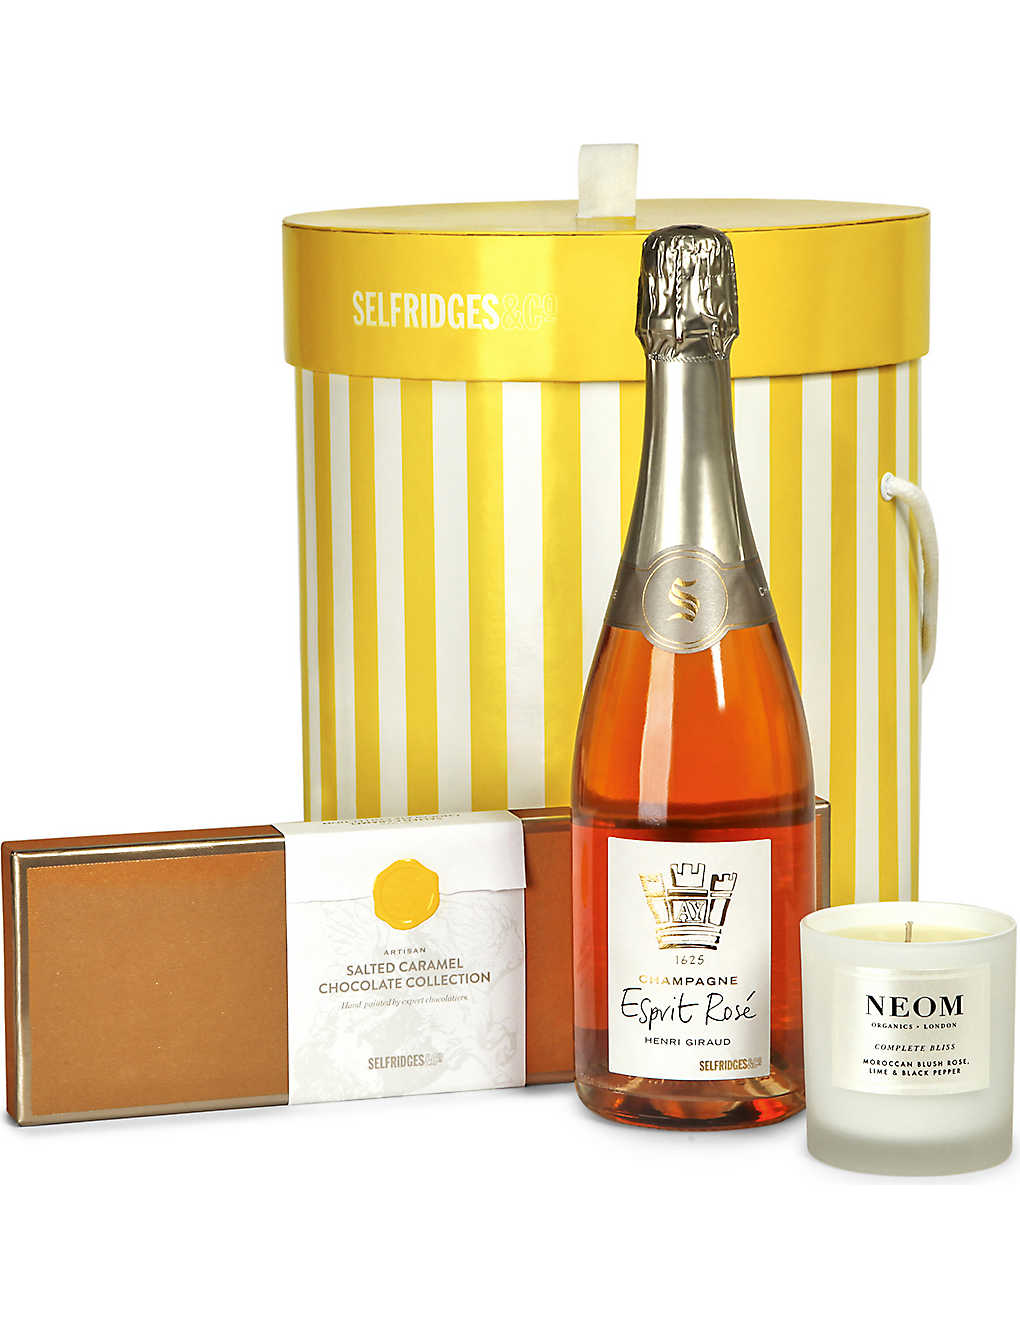 SELFRIDGES SELECTION: Pamper Gift Box